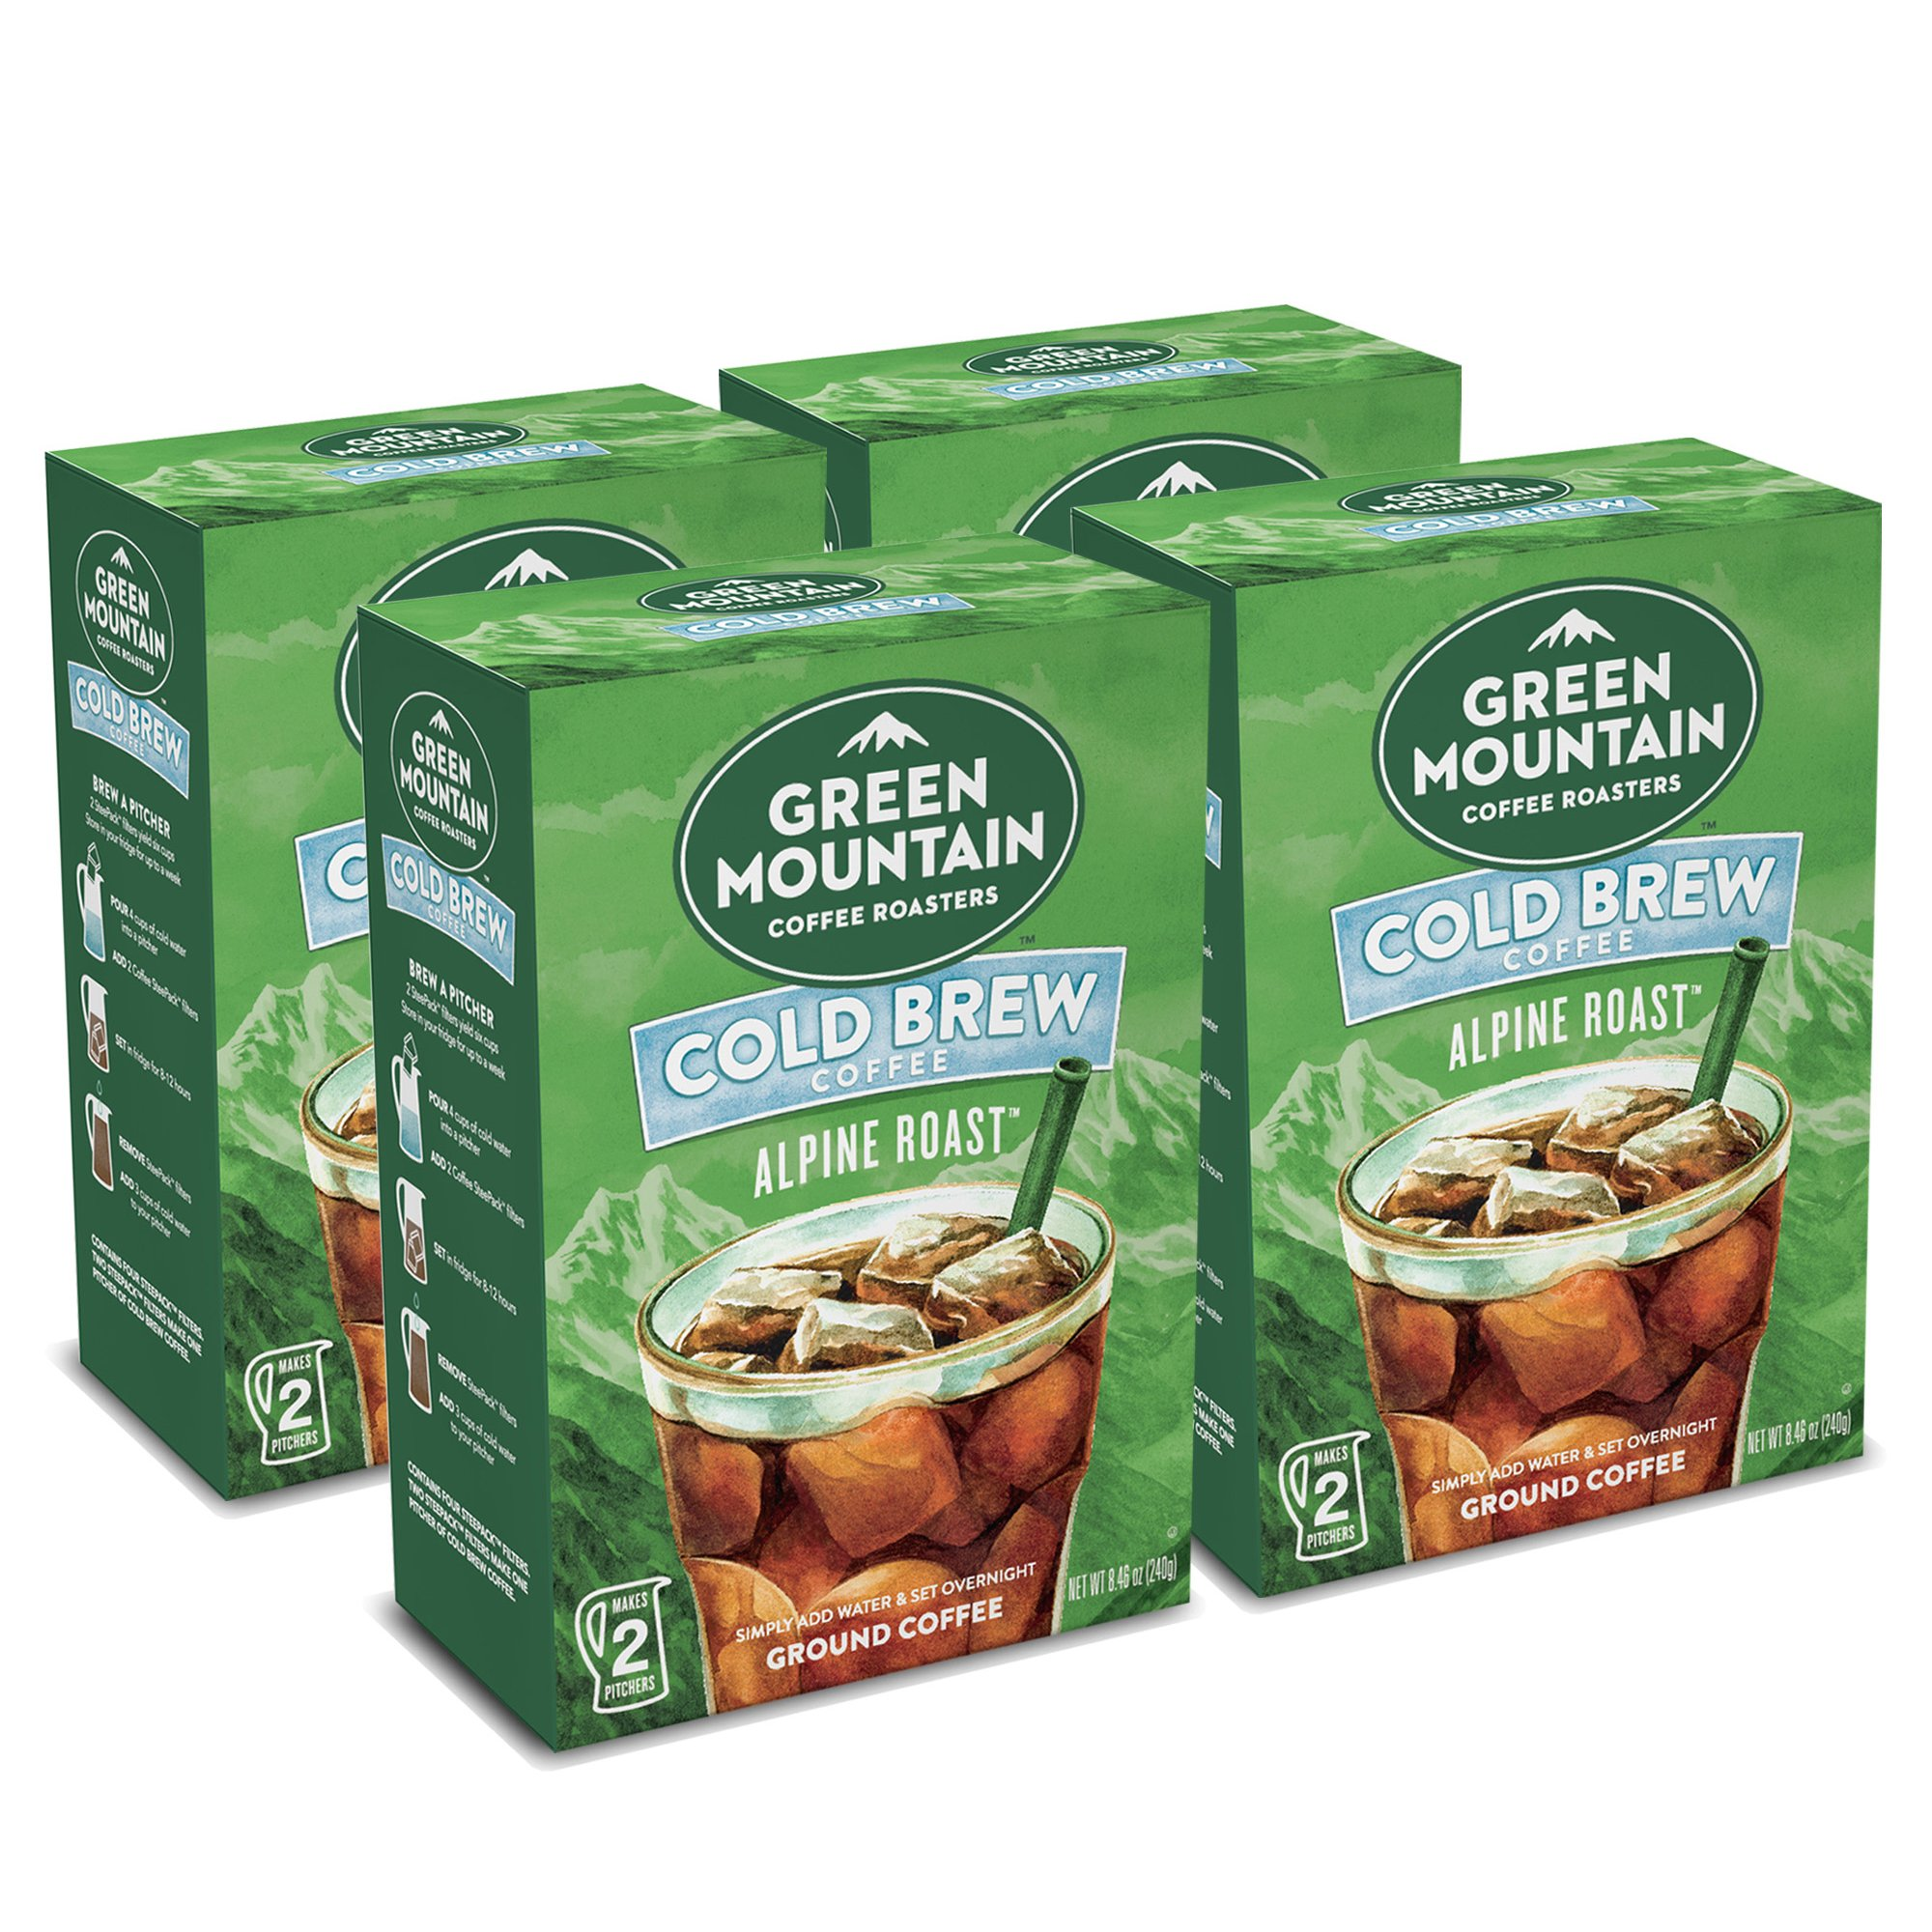 Green Mountain Coffee Roasters, Cold Brew Coffee, Alpine Roast, Dark Roast Coffee, Coarse Ground, Makes 2- 48oz. Pitchers of Real Cold Brew Coffee, Comes with 4 SteePack Coffee Filters (4 Pack)